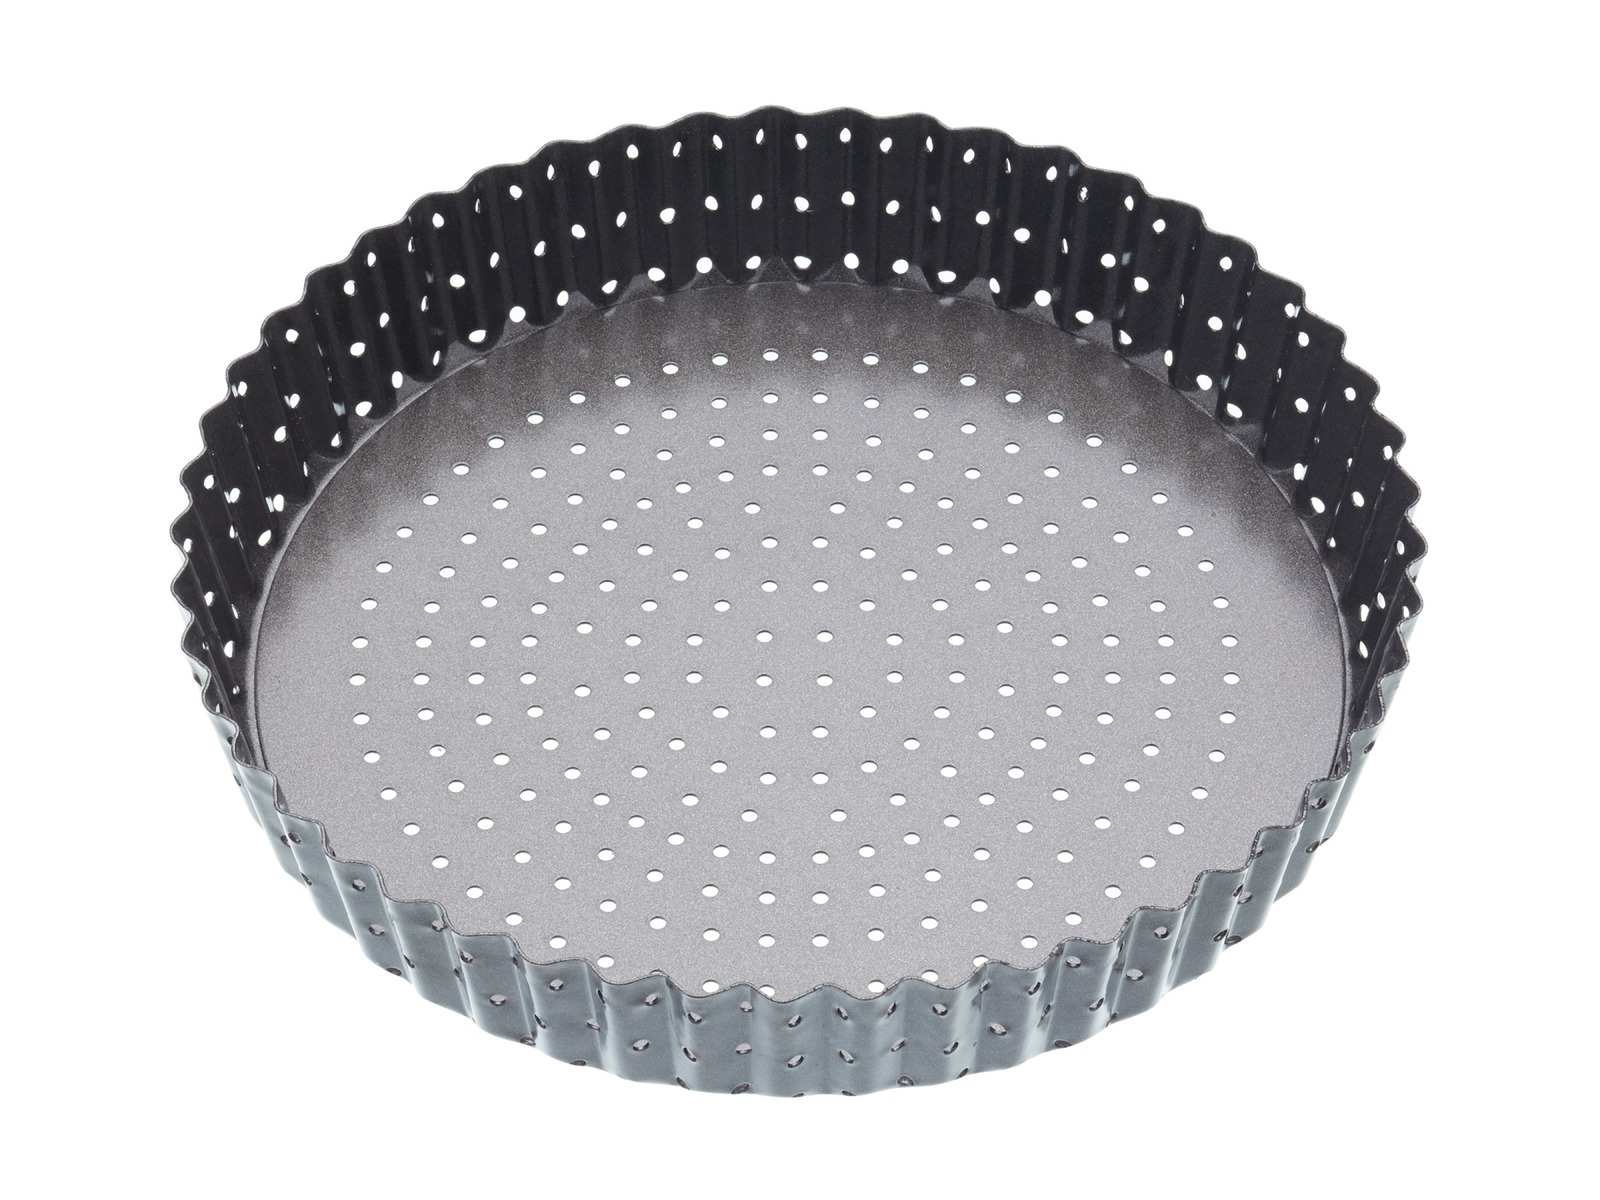 MasterClass: Crusty Bake Loose Base Round Flan/Quiche Pan (25cm) image